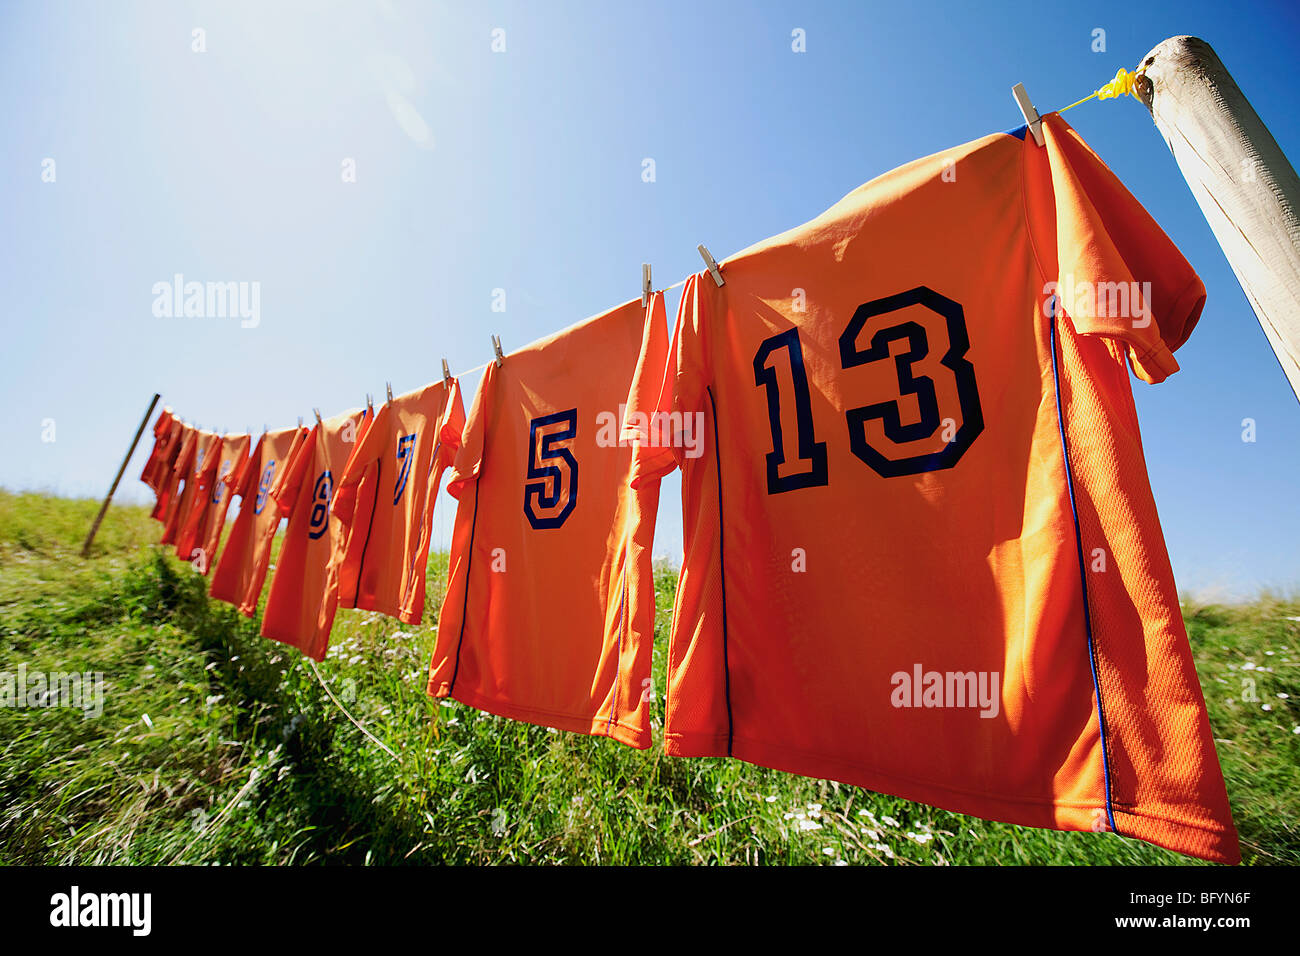 Robes football hanging on clothesline Photo Stock